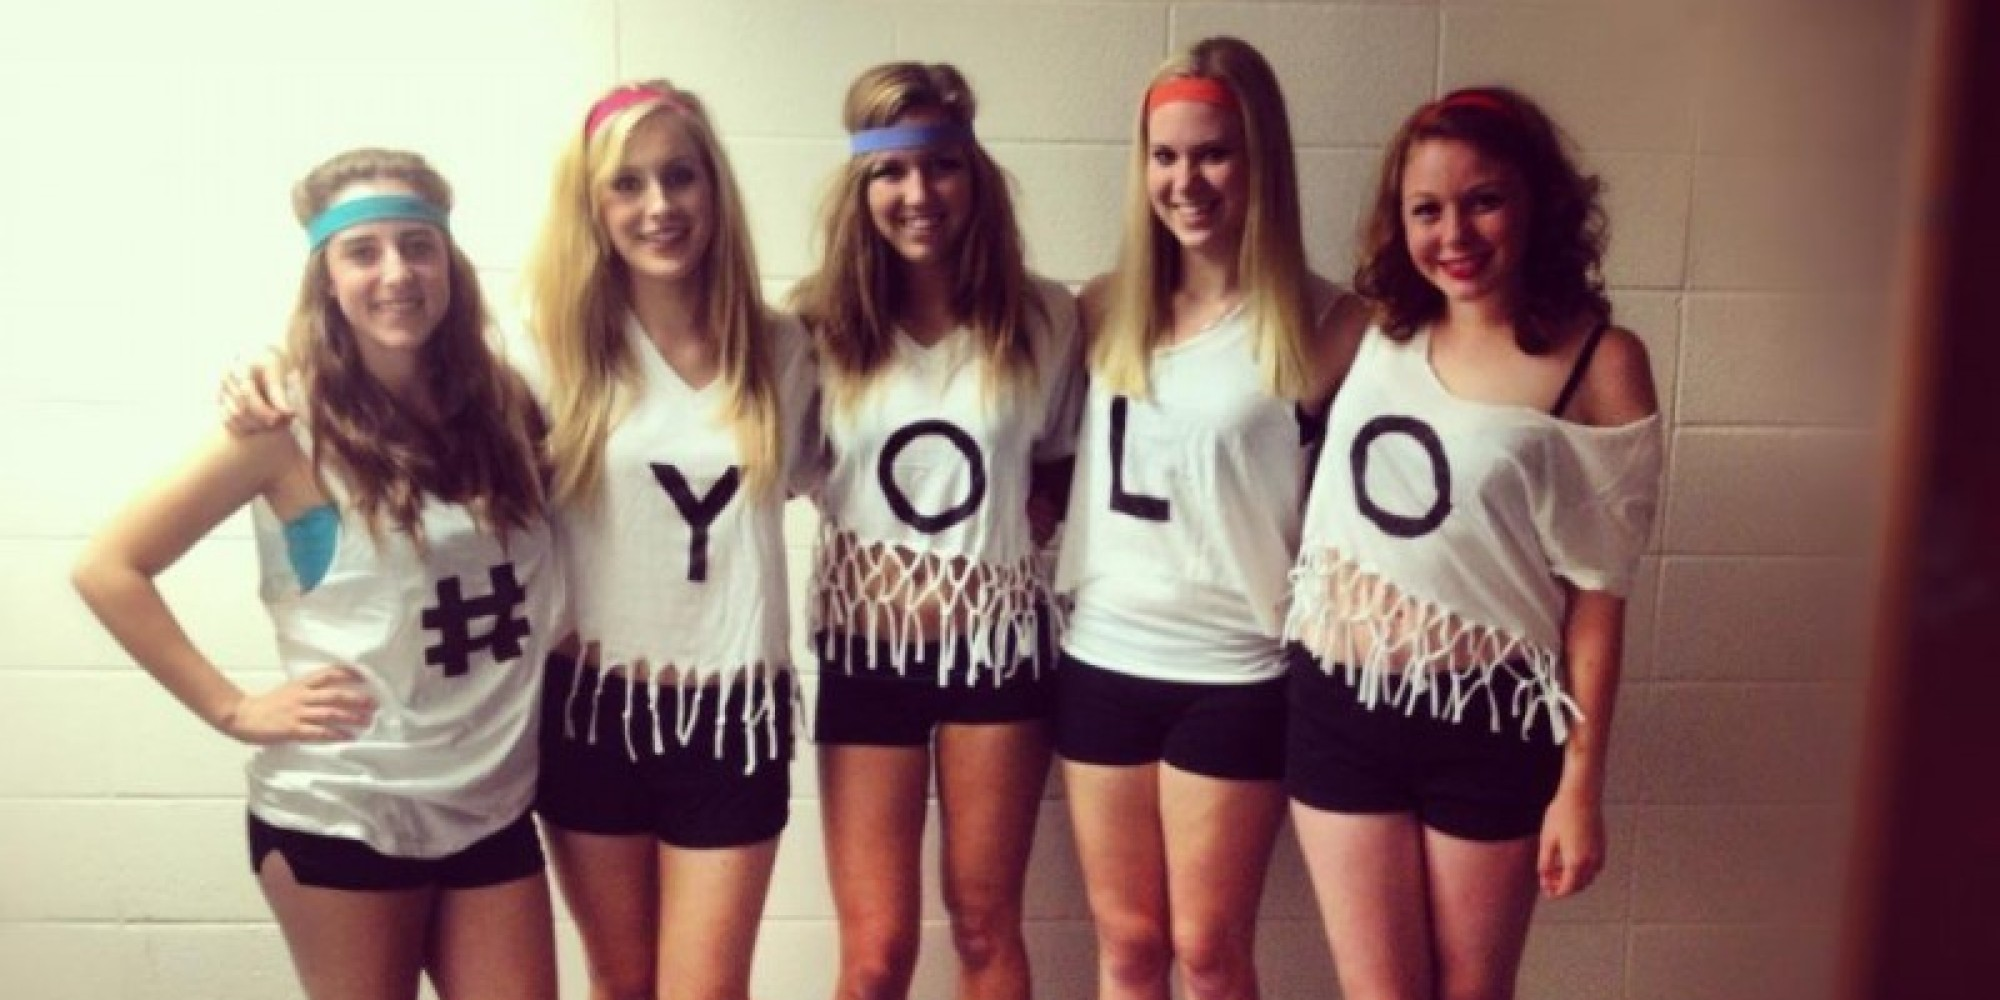 teenage girl diy costume ideas. group costume ideas that are cheap, easy and totally diy for halloween (photos) | huffpost teenage girl diy